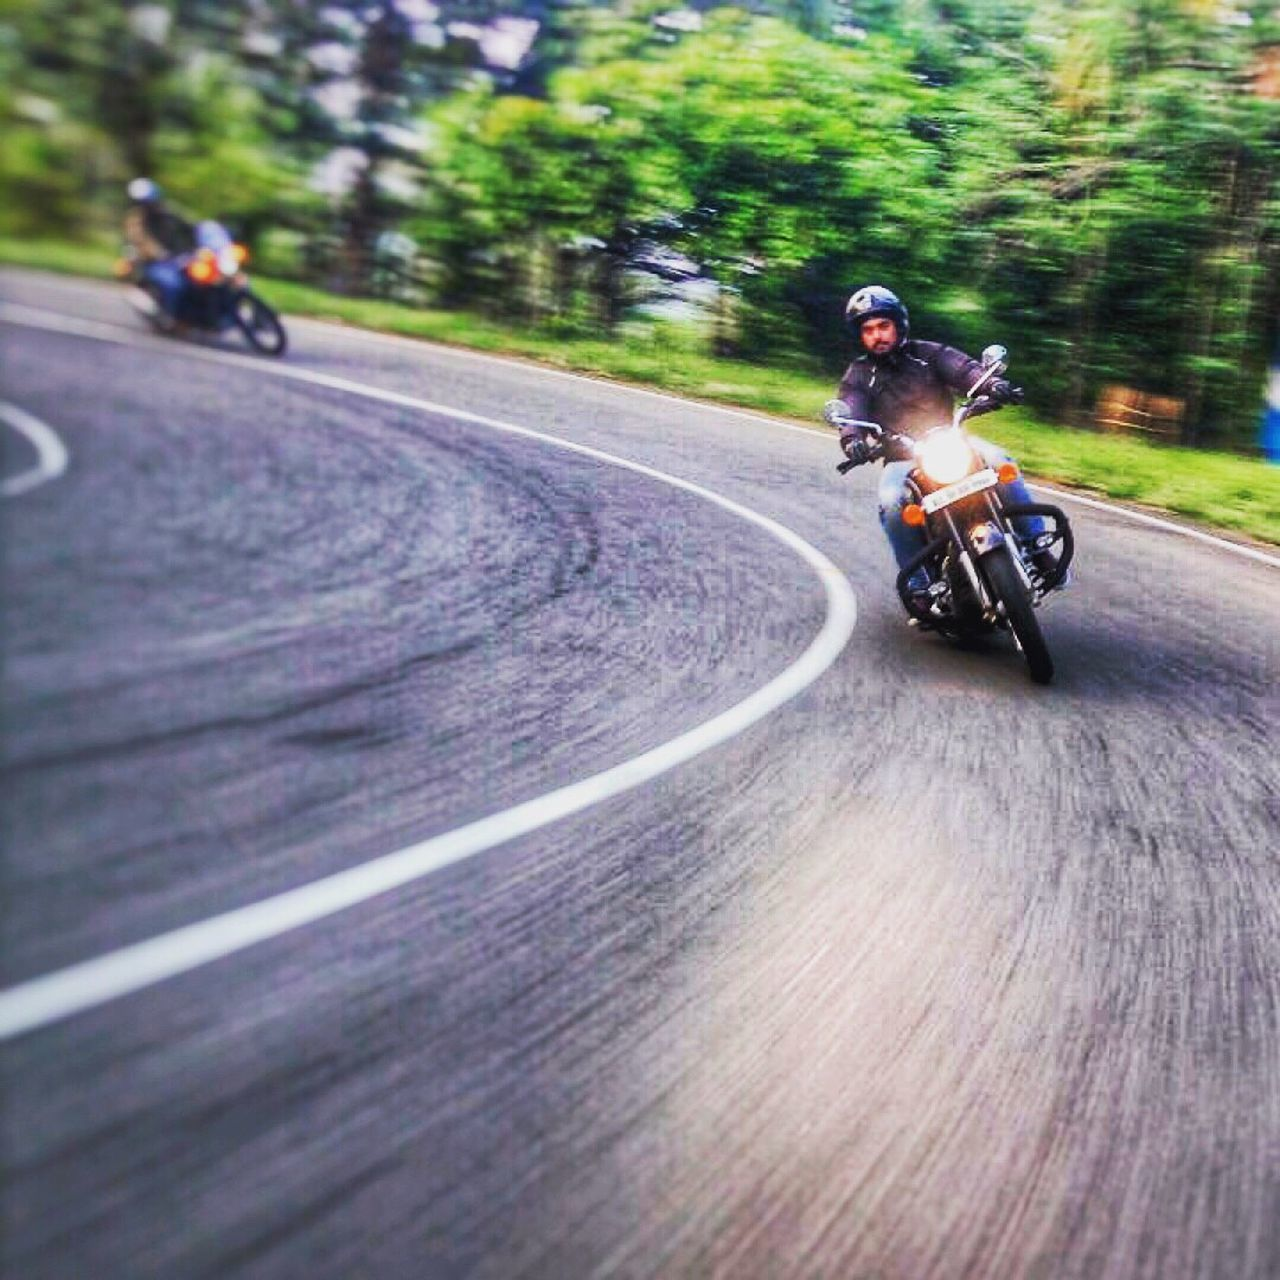 Education is important but riding is importanter. Motorcycle Riding Blurred Motion Road Real People Biker Motion Speed Transportation Outdoors Men Lifestyles Asphalt Day One Person Sports Race Close-up Headwear PeopleBullet500ccfieldindia] Royalenfieldbeasts bullet500cc